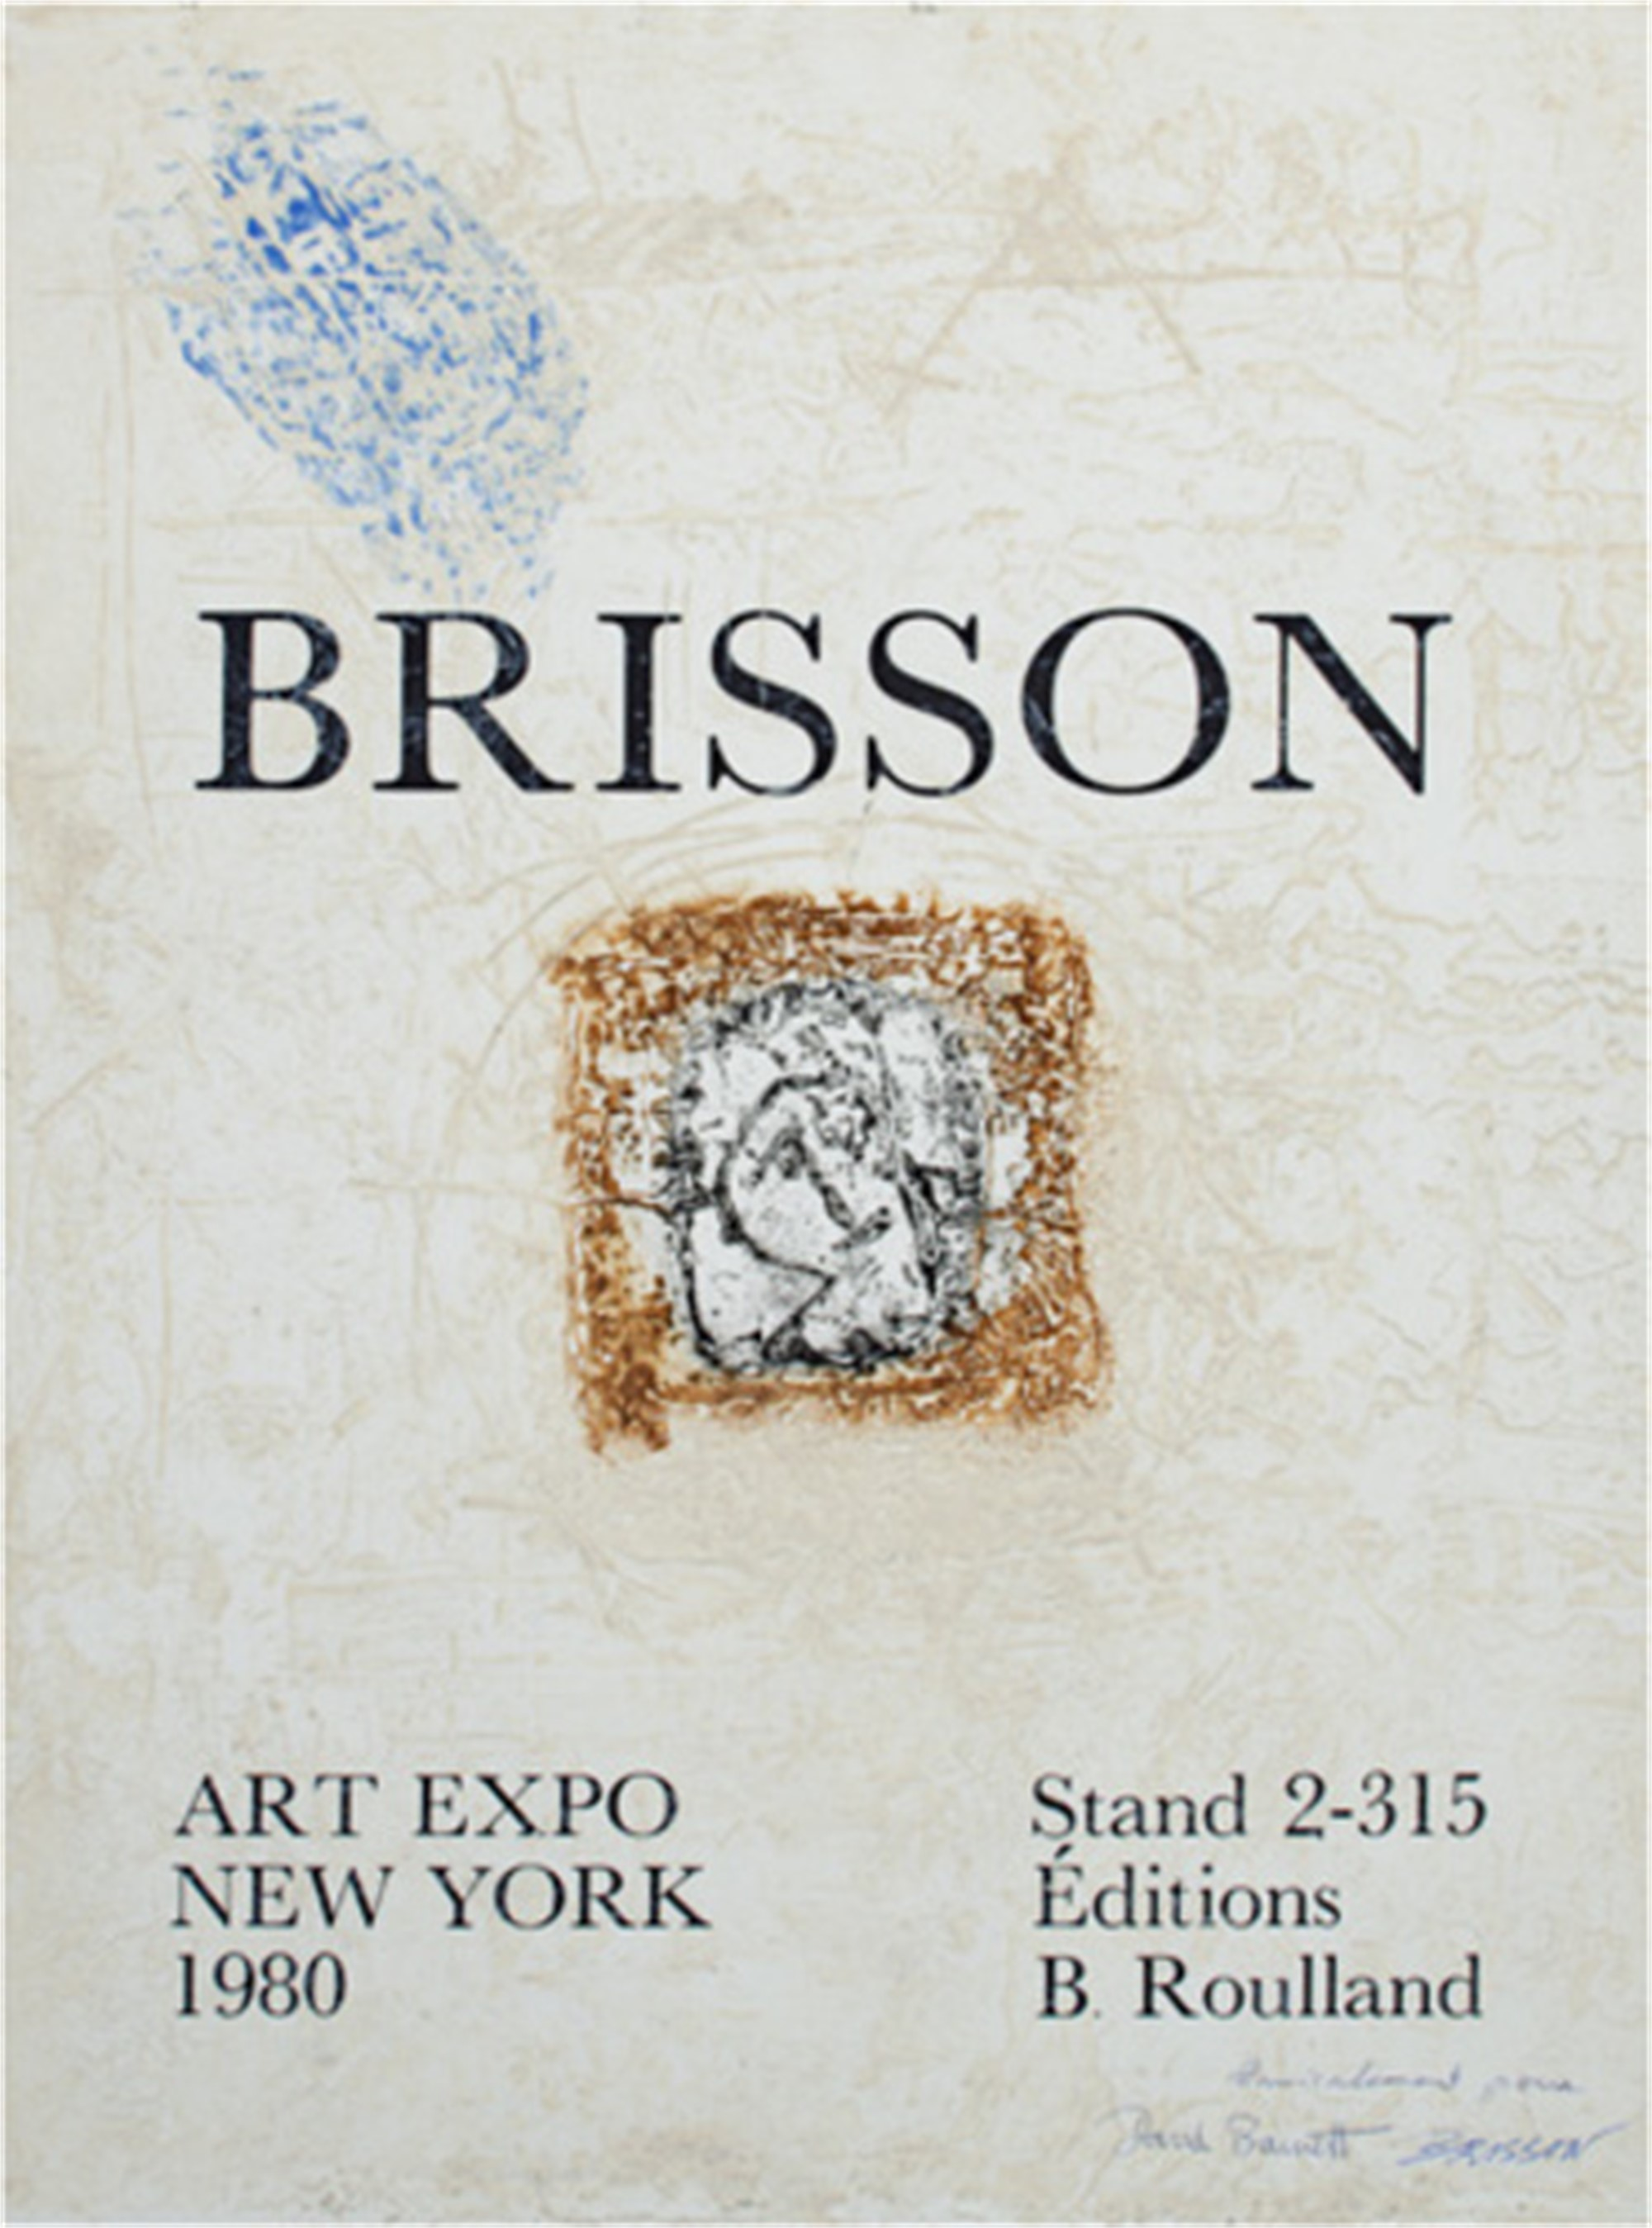 Art Expo, New York, signed and inscribed to D.B. by Pierre Marie Brisson